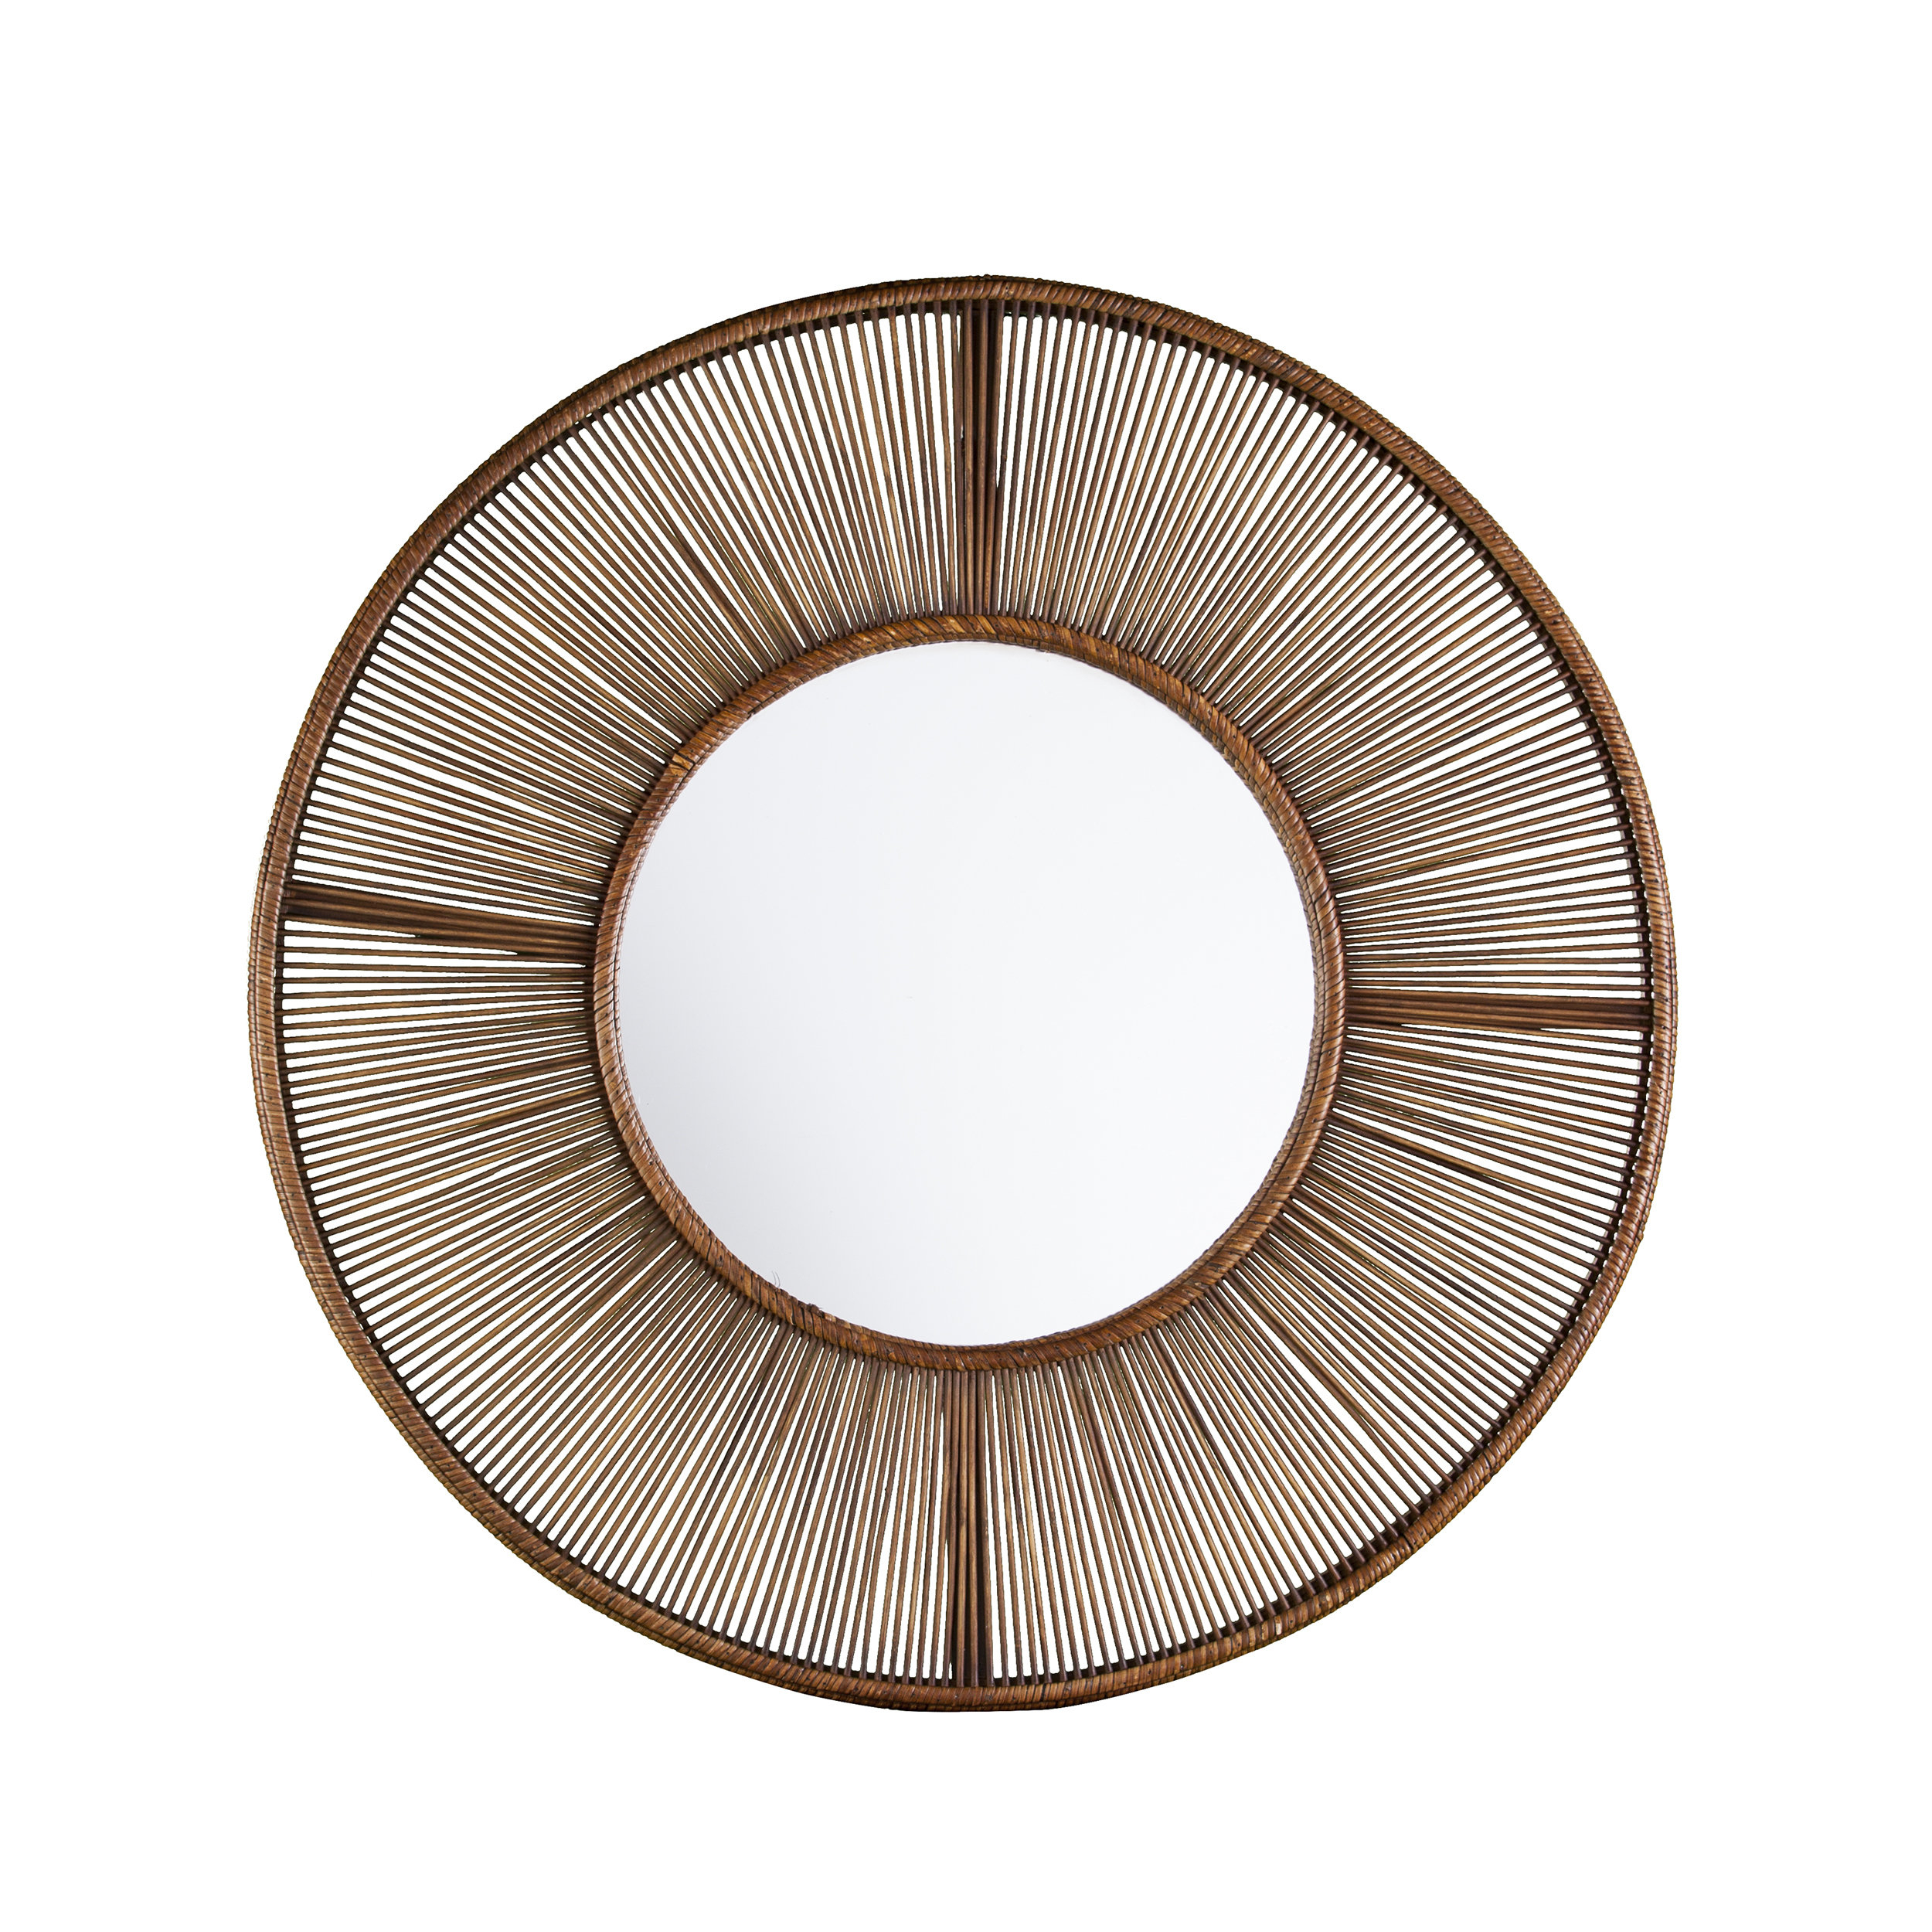 Vanburen Oversized Decorative Accent Mirror in Jarrod Sunburst Accent Mirrors (Image 29 of 30)